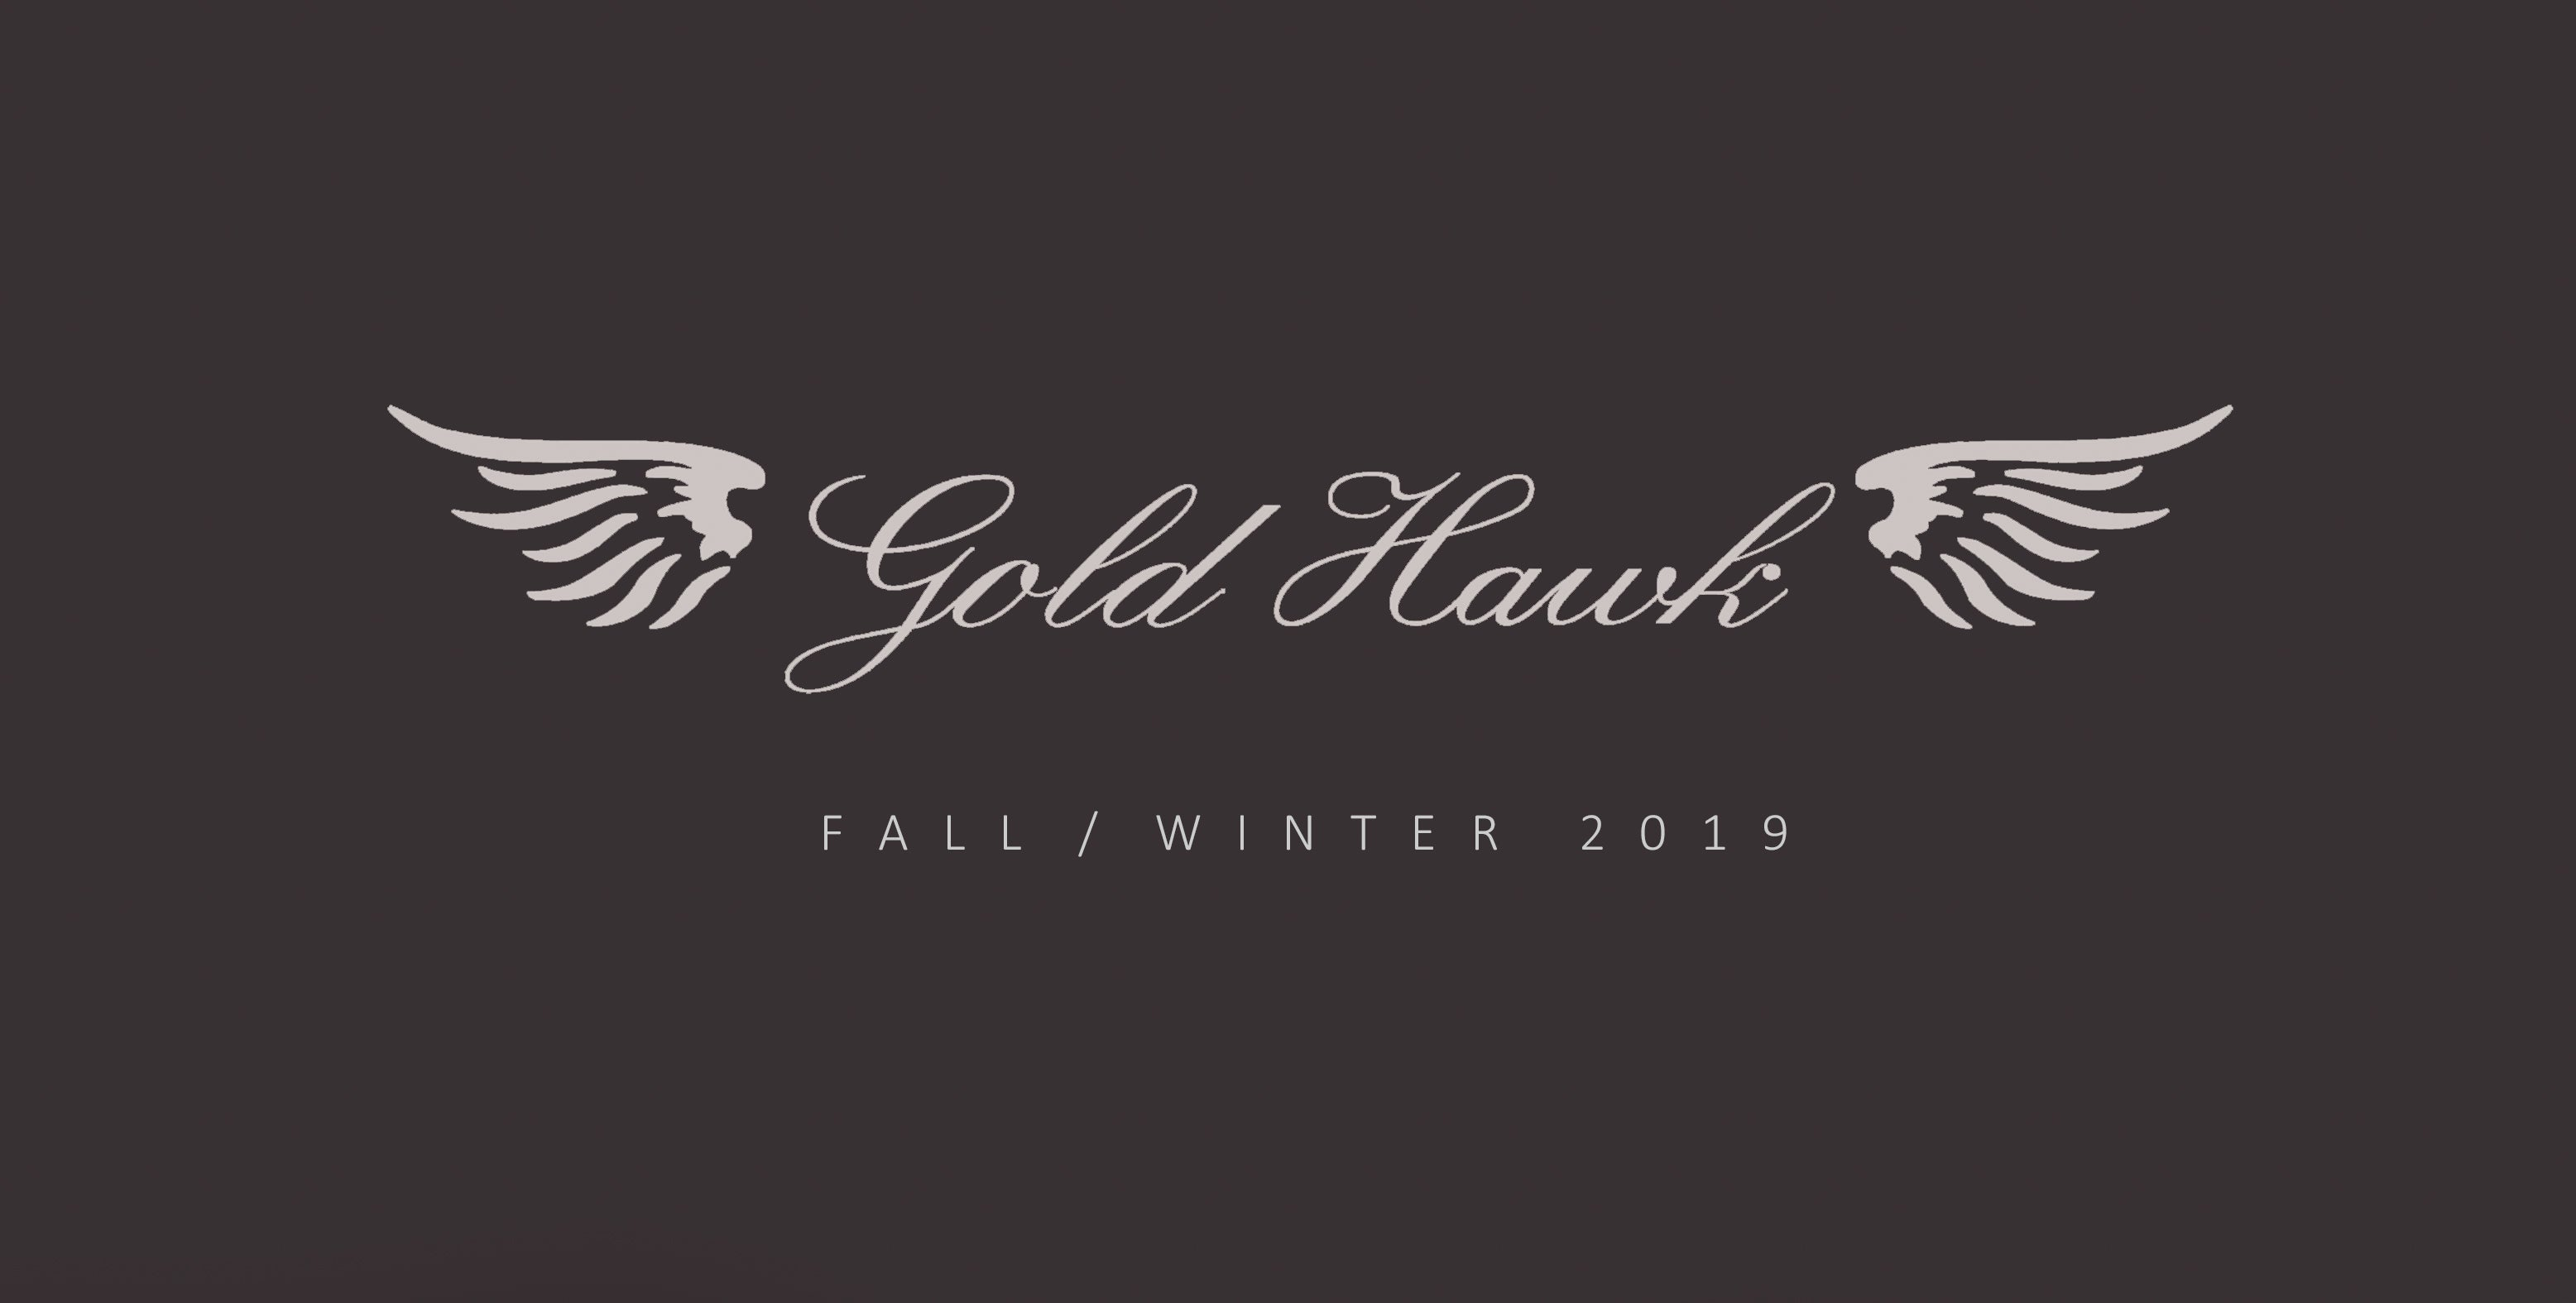 Gold Hawk Fall Winter 2019 Style Guide